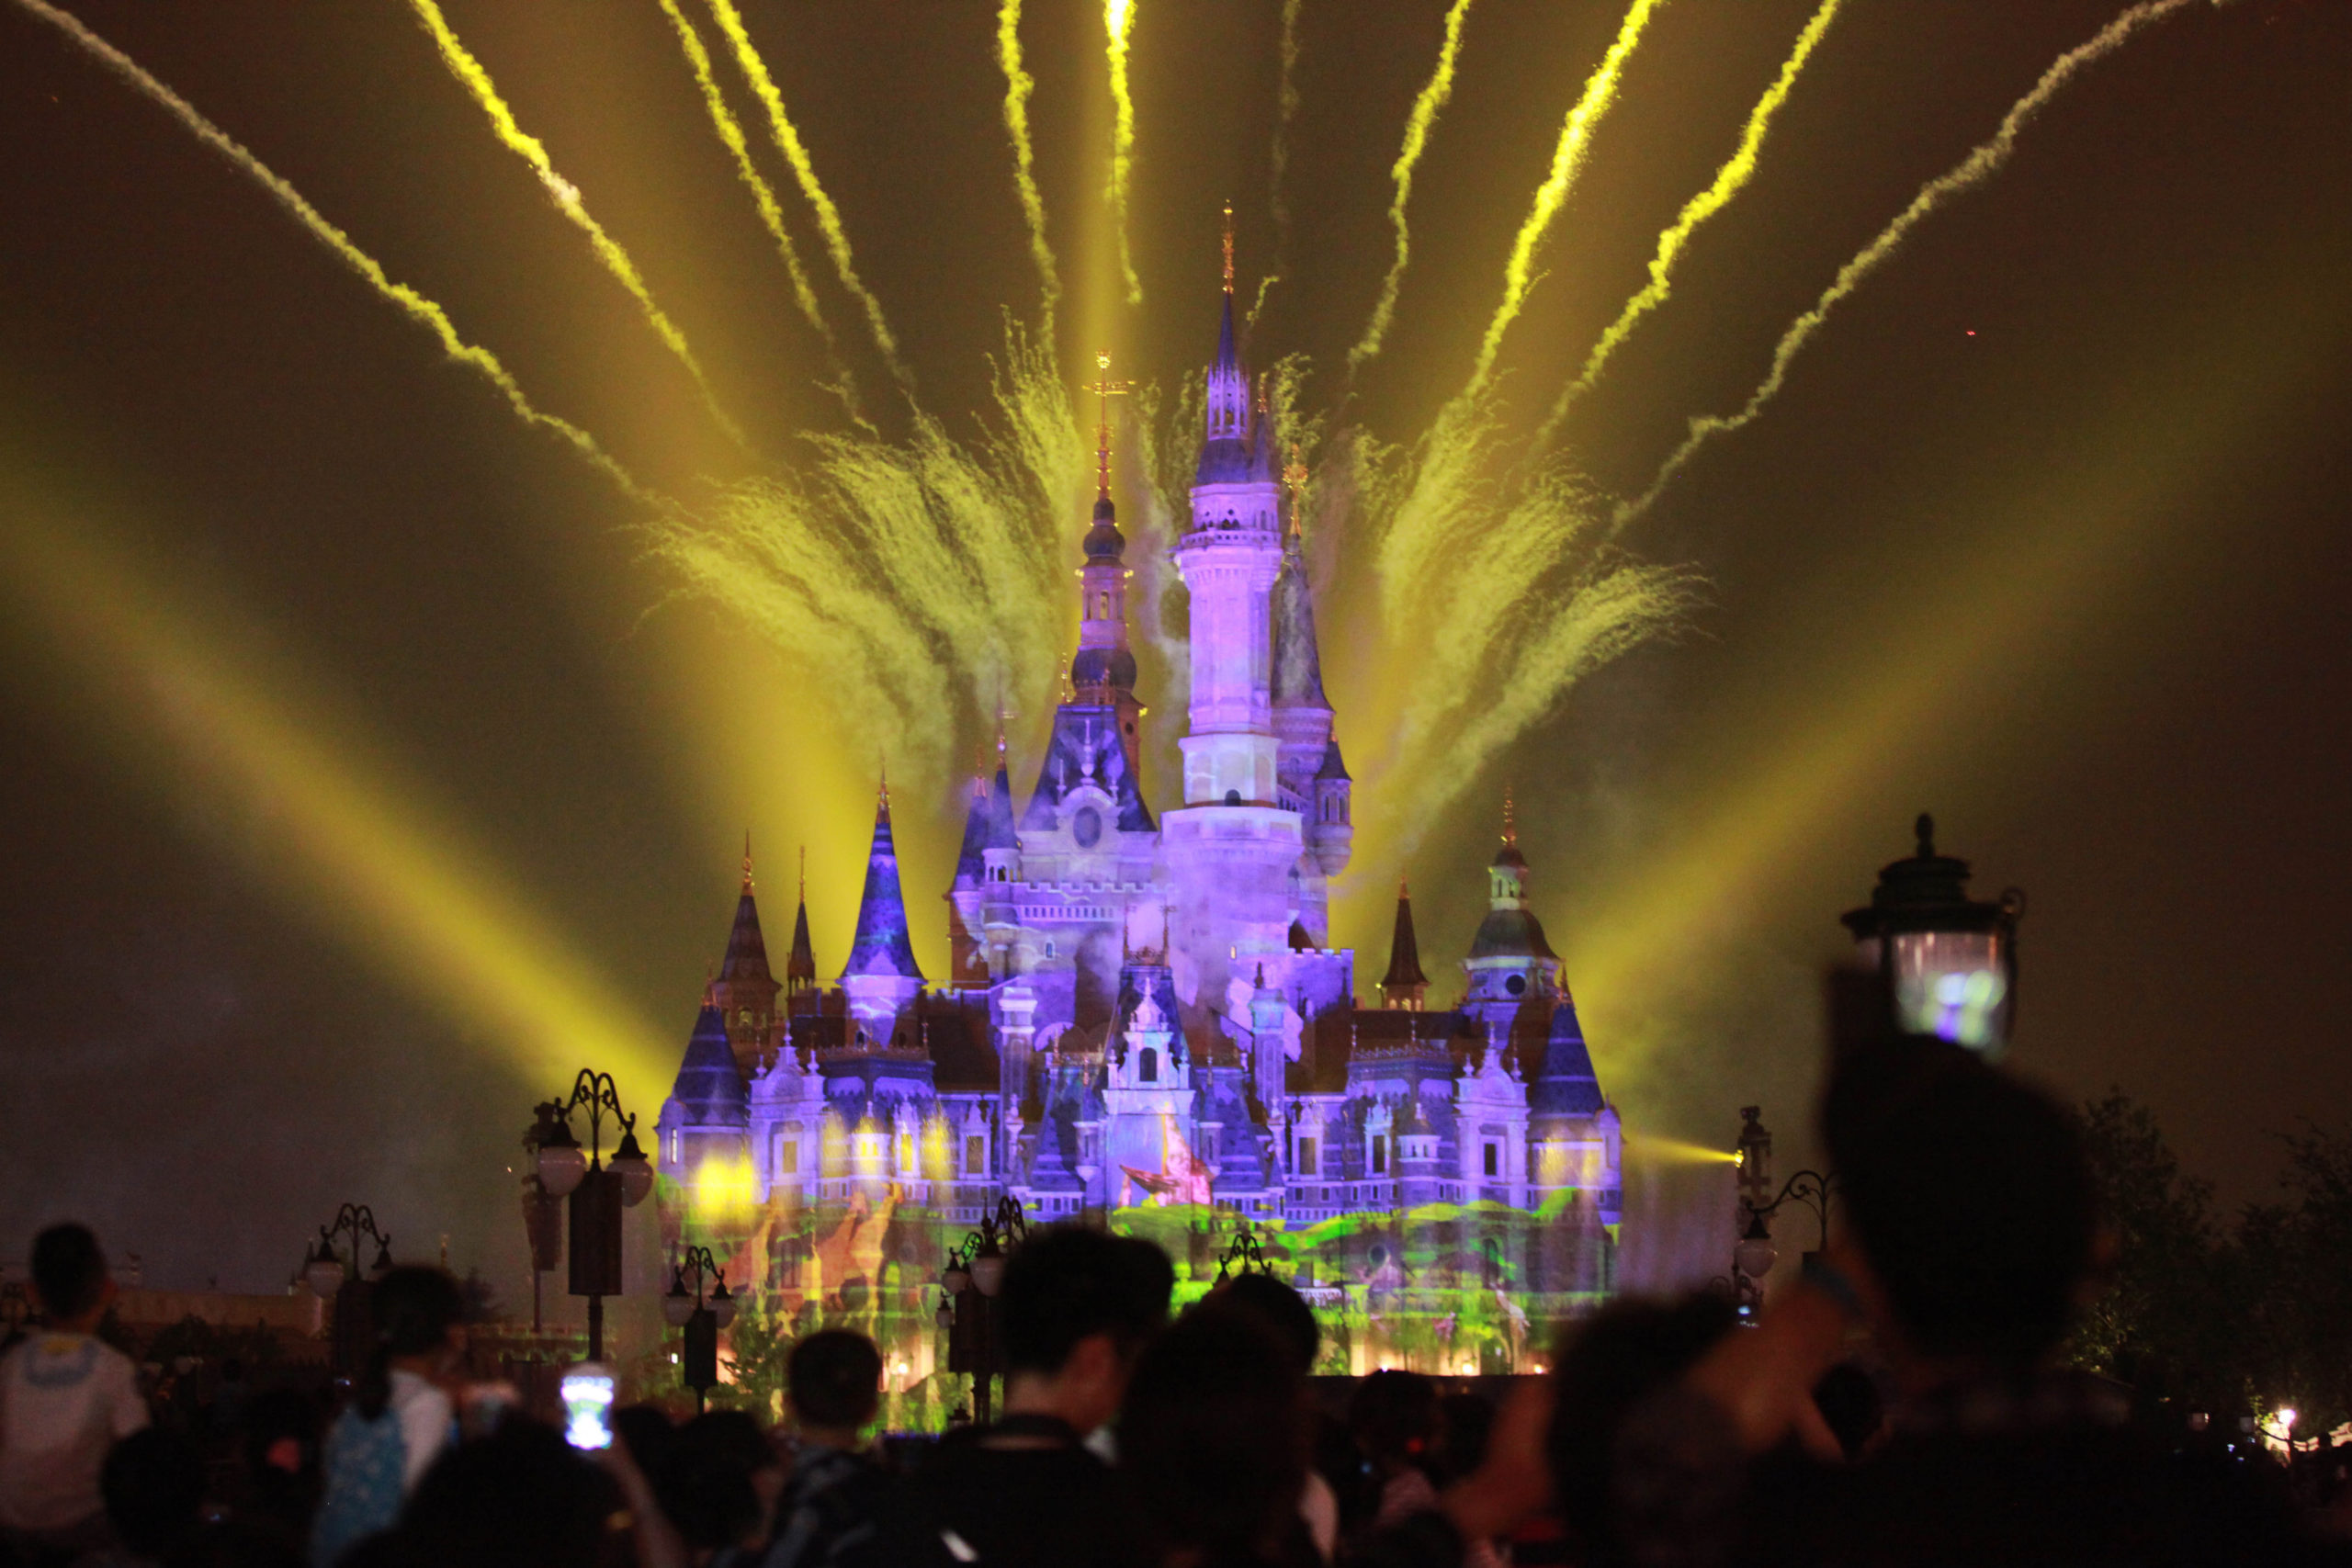 Disney's research department has been working on a new type of fireworks...